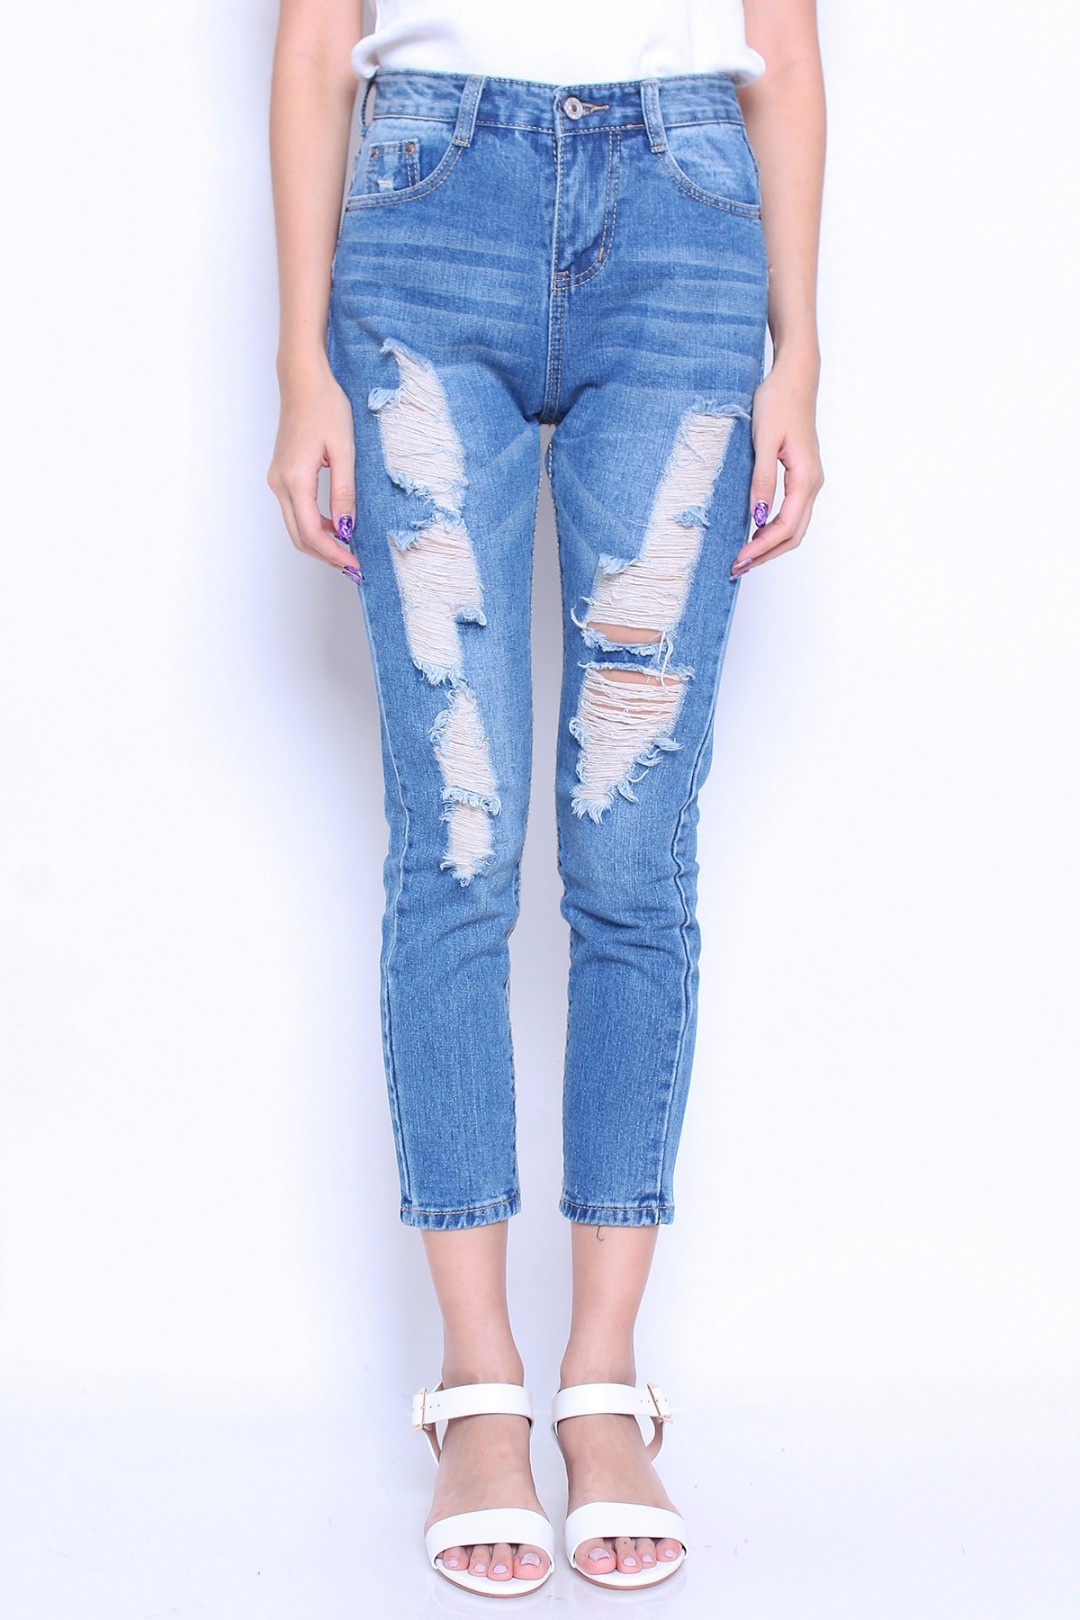 0f6e20ec8b17 RESTOCKED YOUR BEST CASUAL RIBBED JEANS  S M L  - ShopperBoard